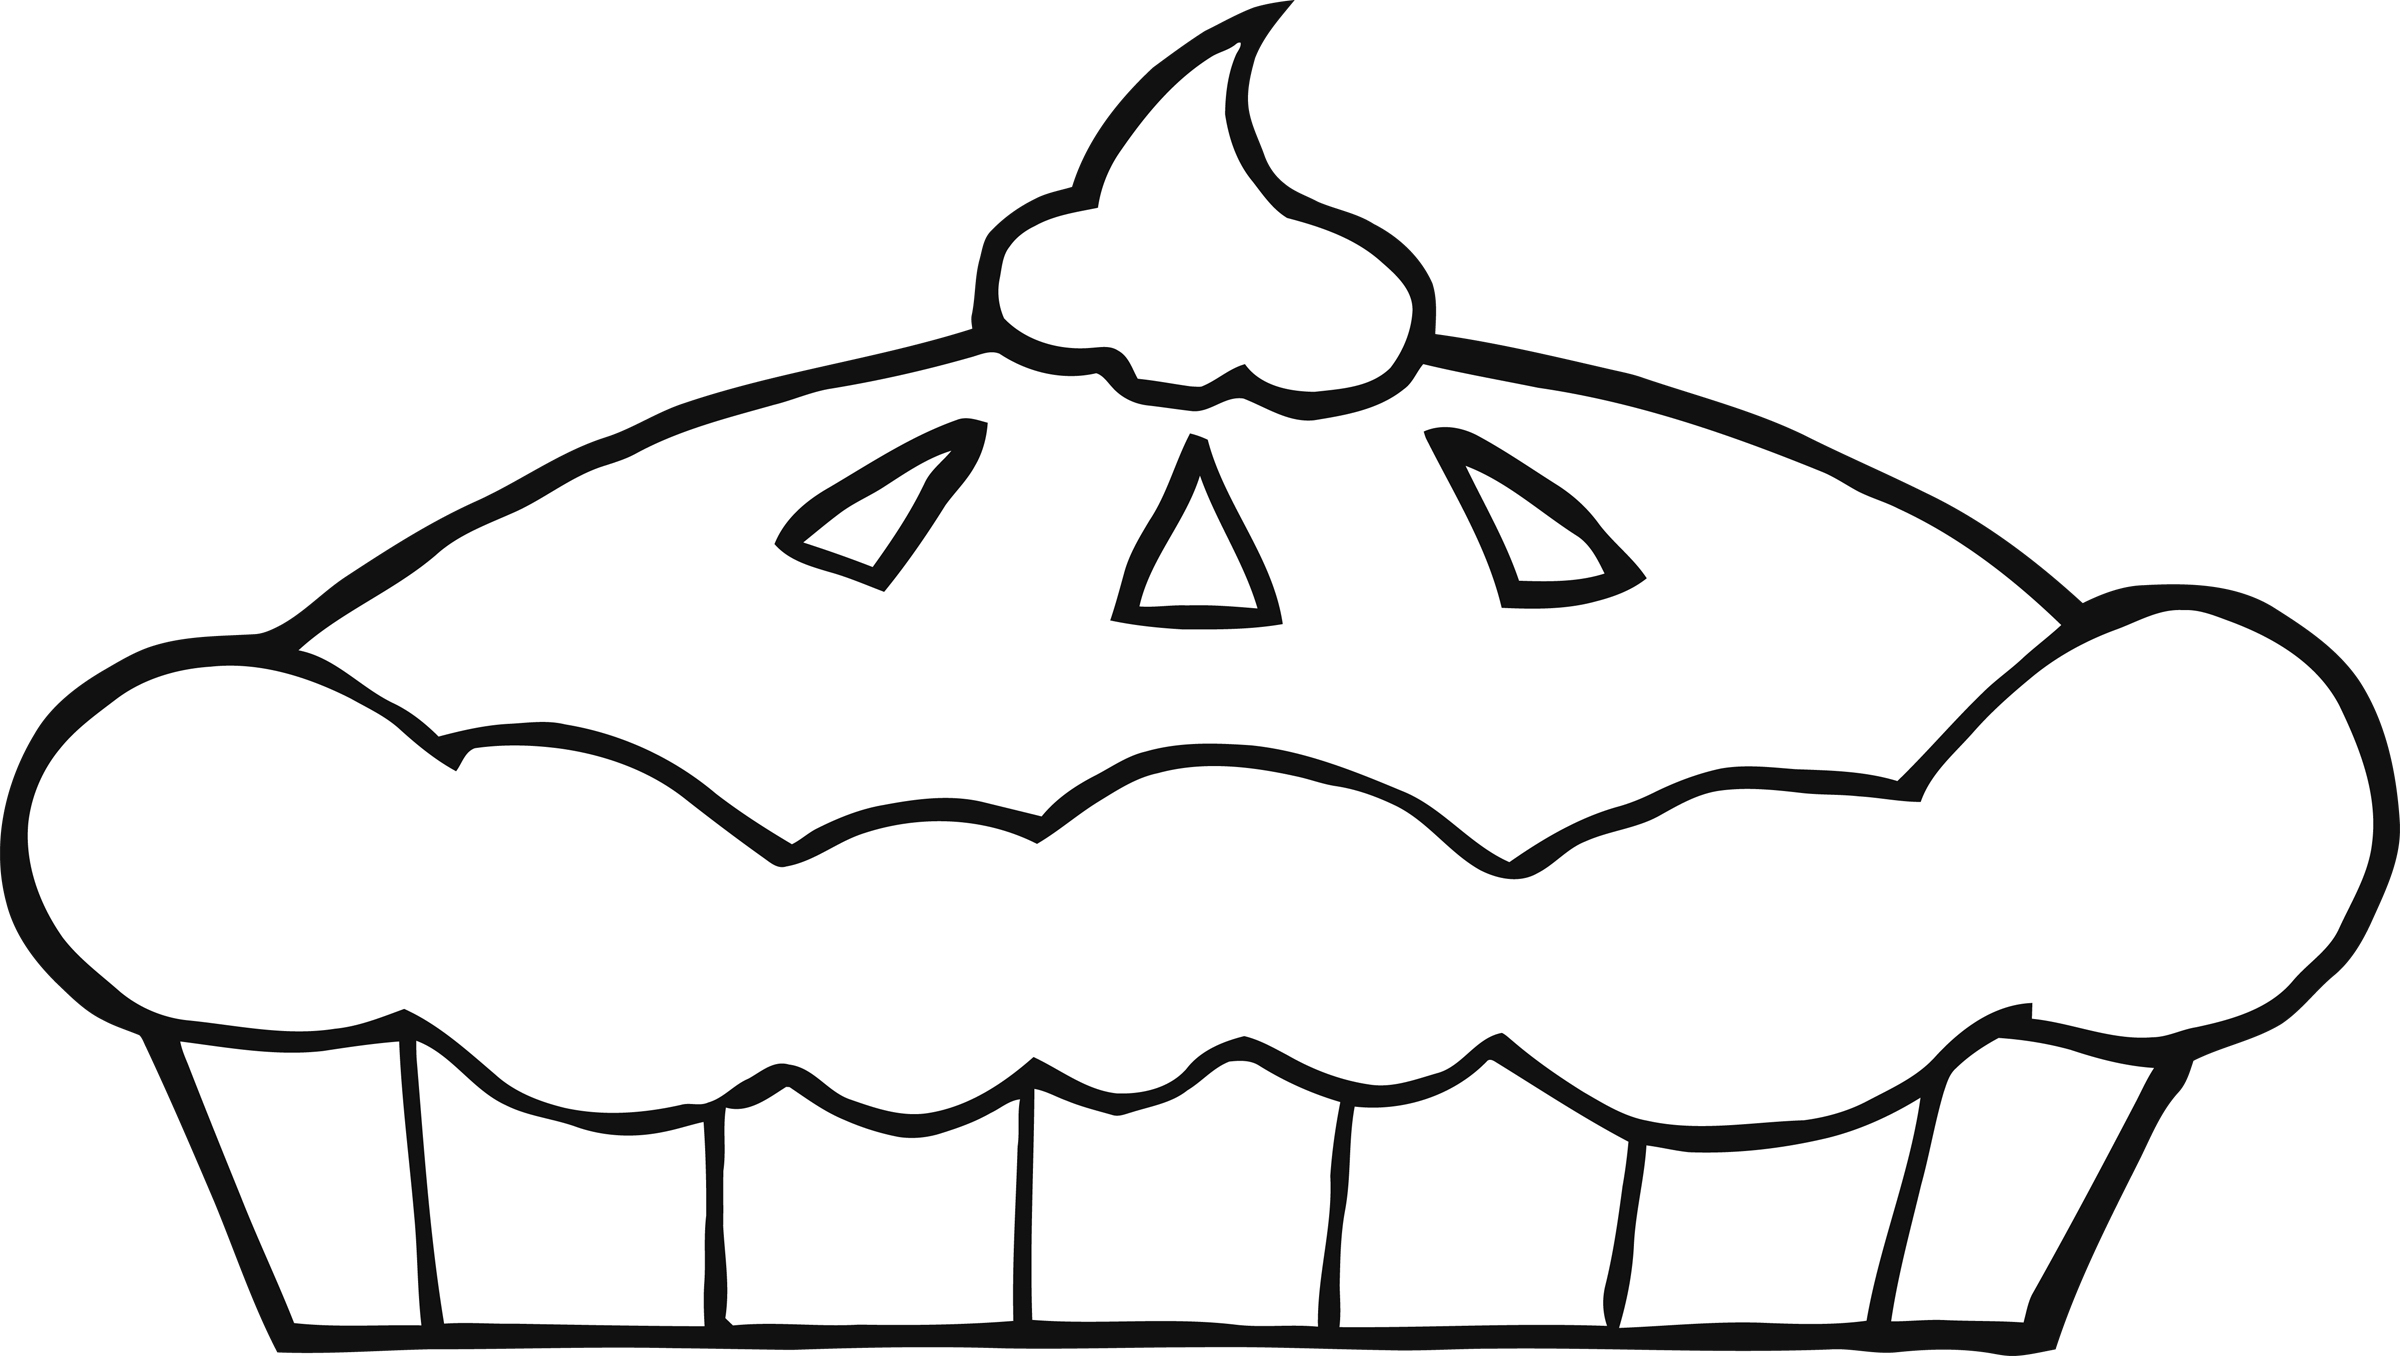 Black And White Pies Clipart.